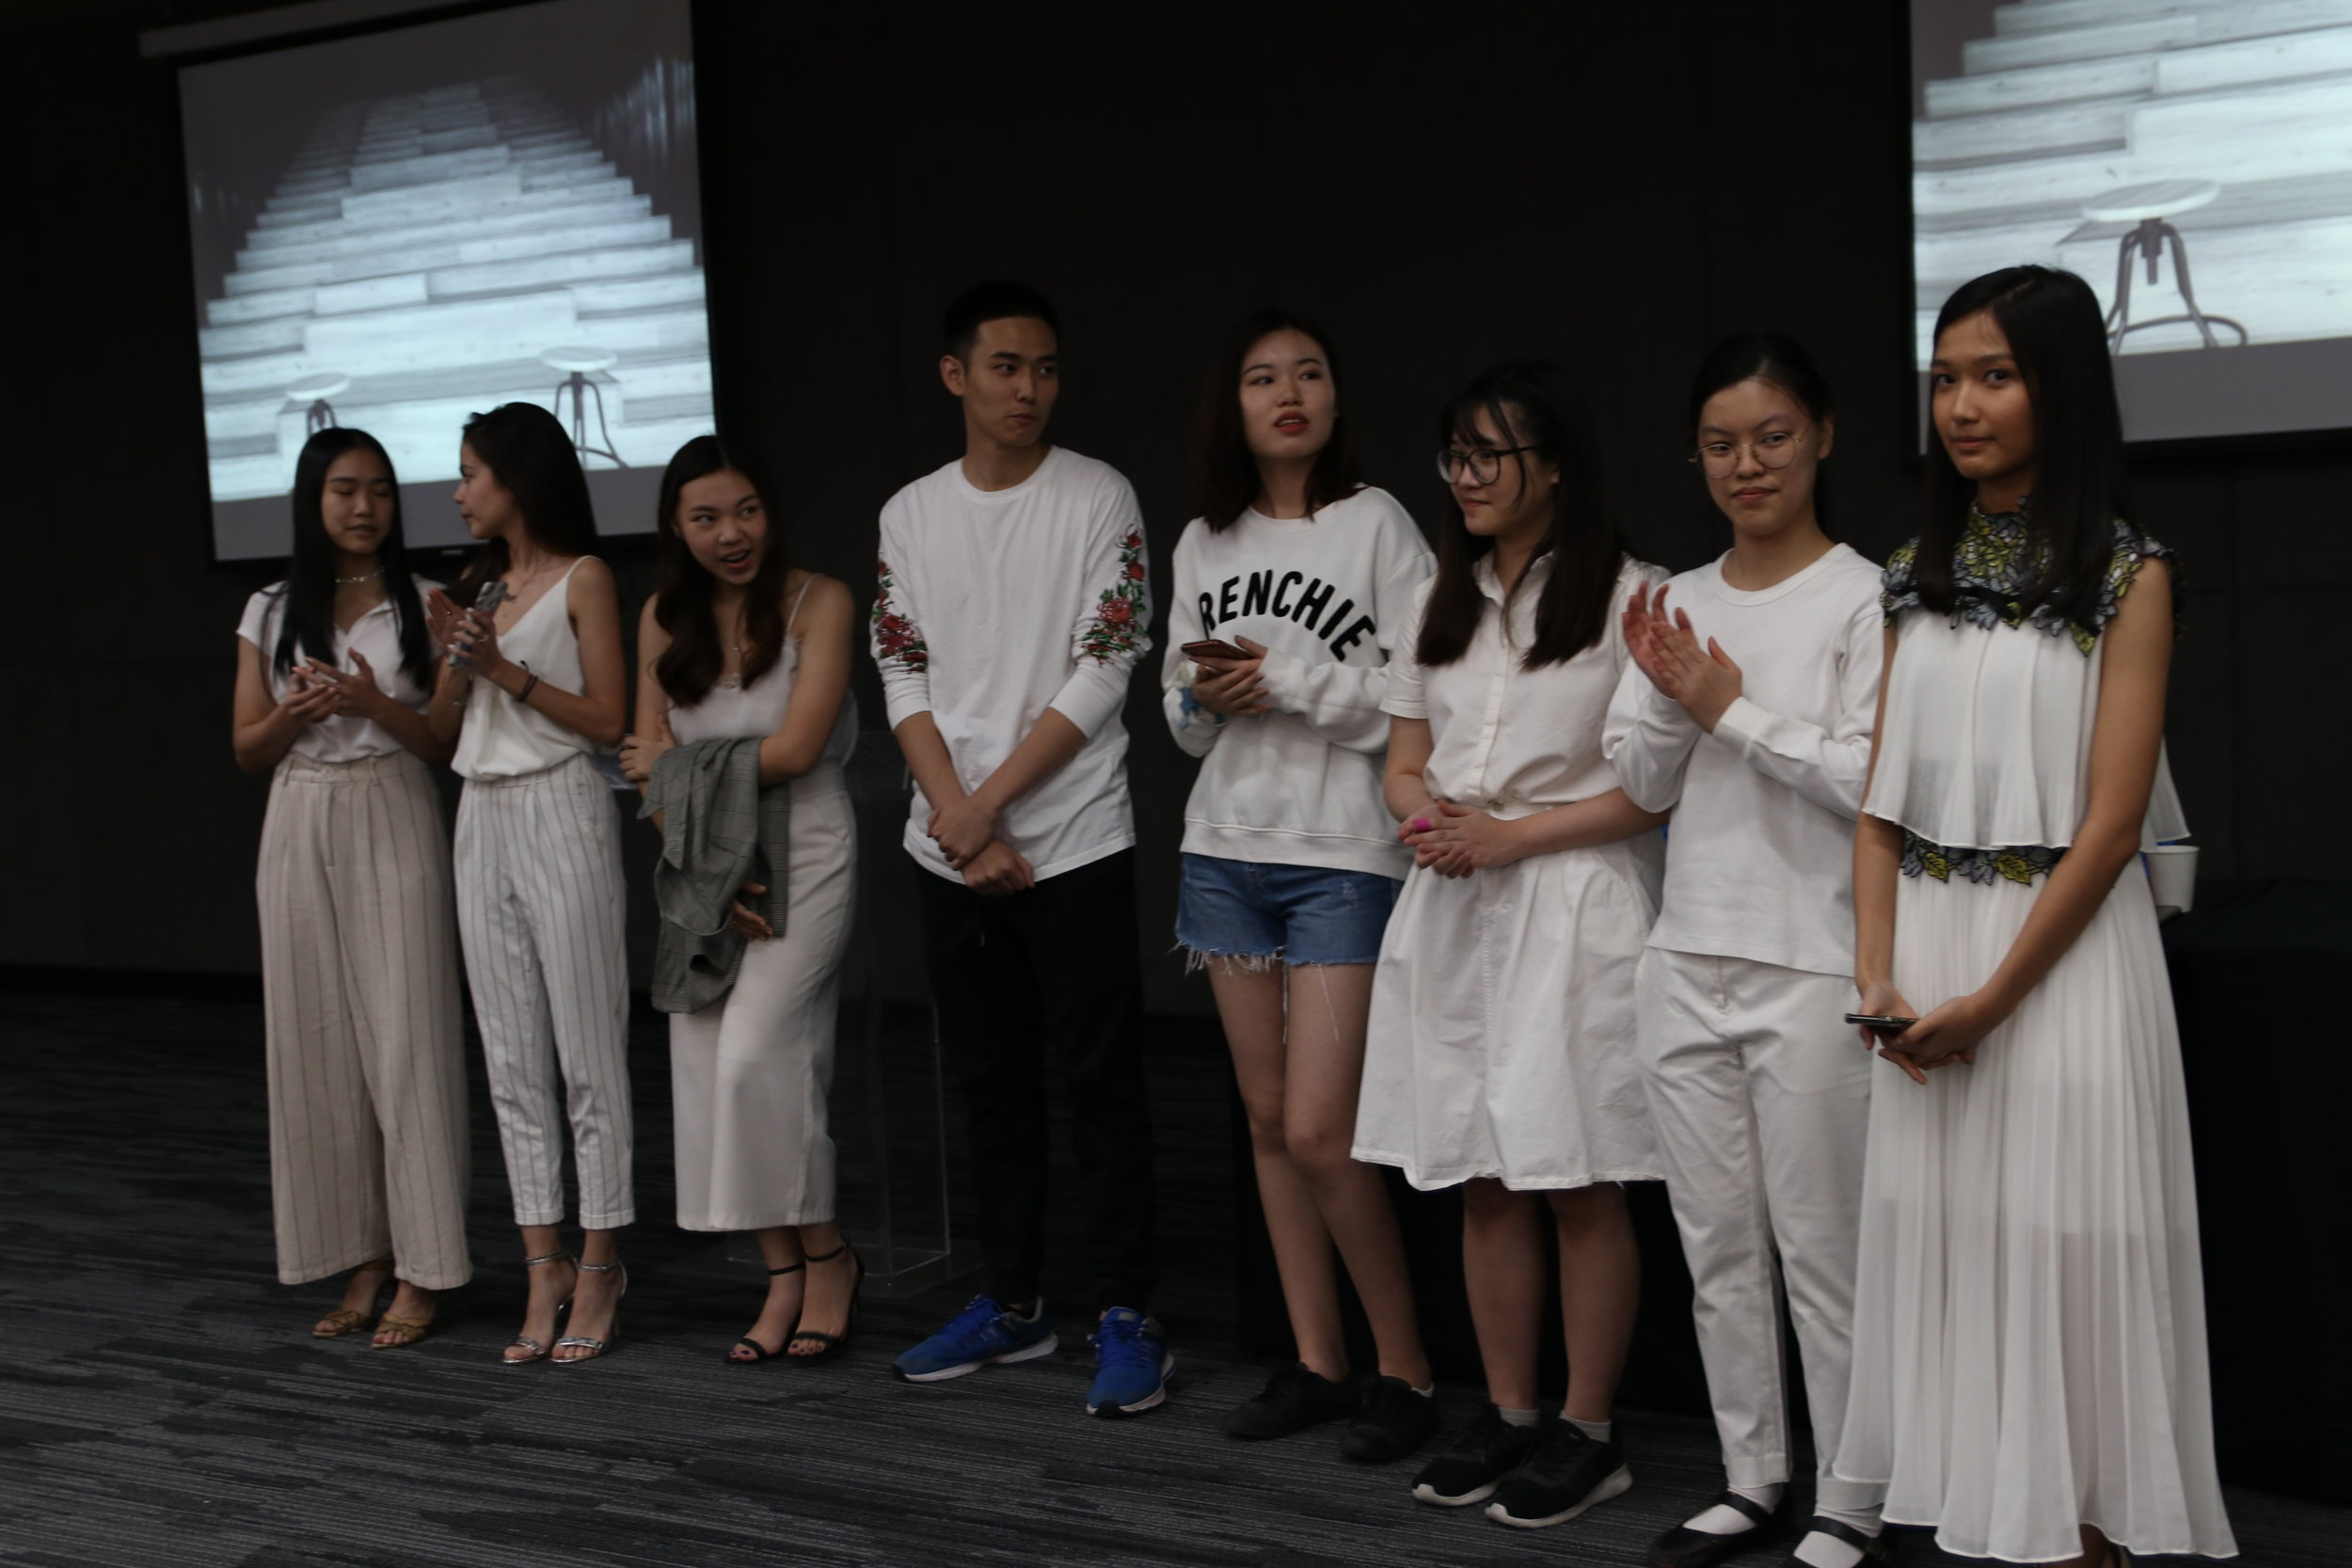 "The artists (from left to right): Yeewa, Kiara, Jean, Prin, Joanna, Monet, Claire, Thinzar  Photograph credit to Pongpichet ""Dew"" Piyaman."